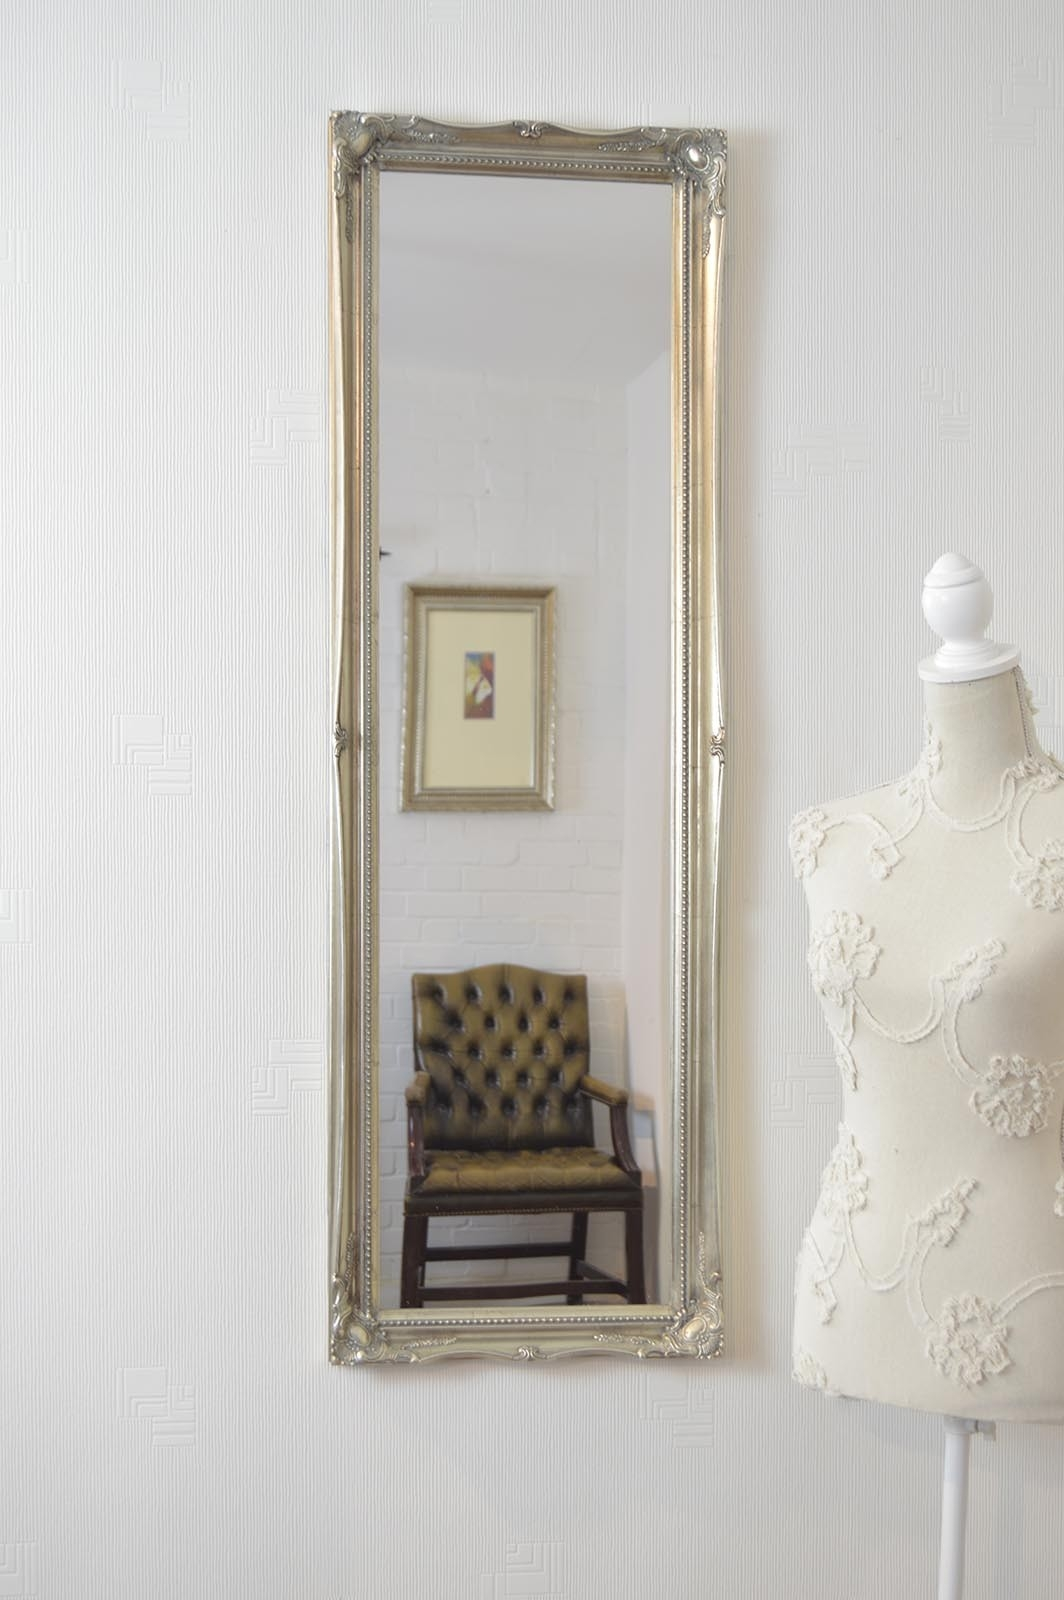 Large Silver Antique Style Dress Wall Mounted Mirror Rectangle Throughout Antique Style Mirrors Wall (Image 8 of 15)